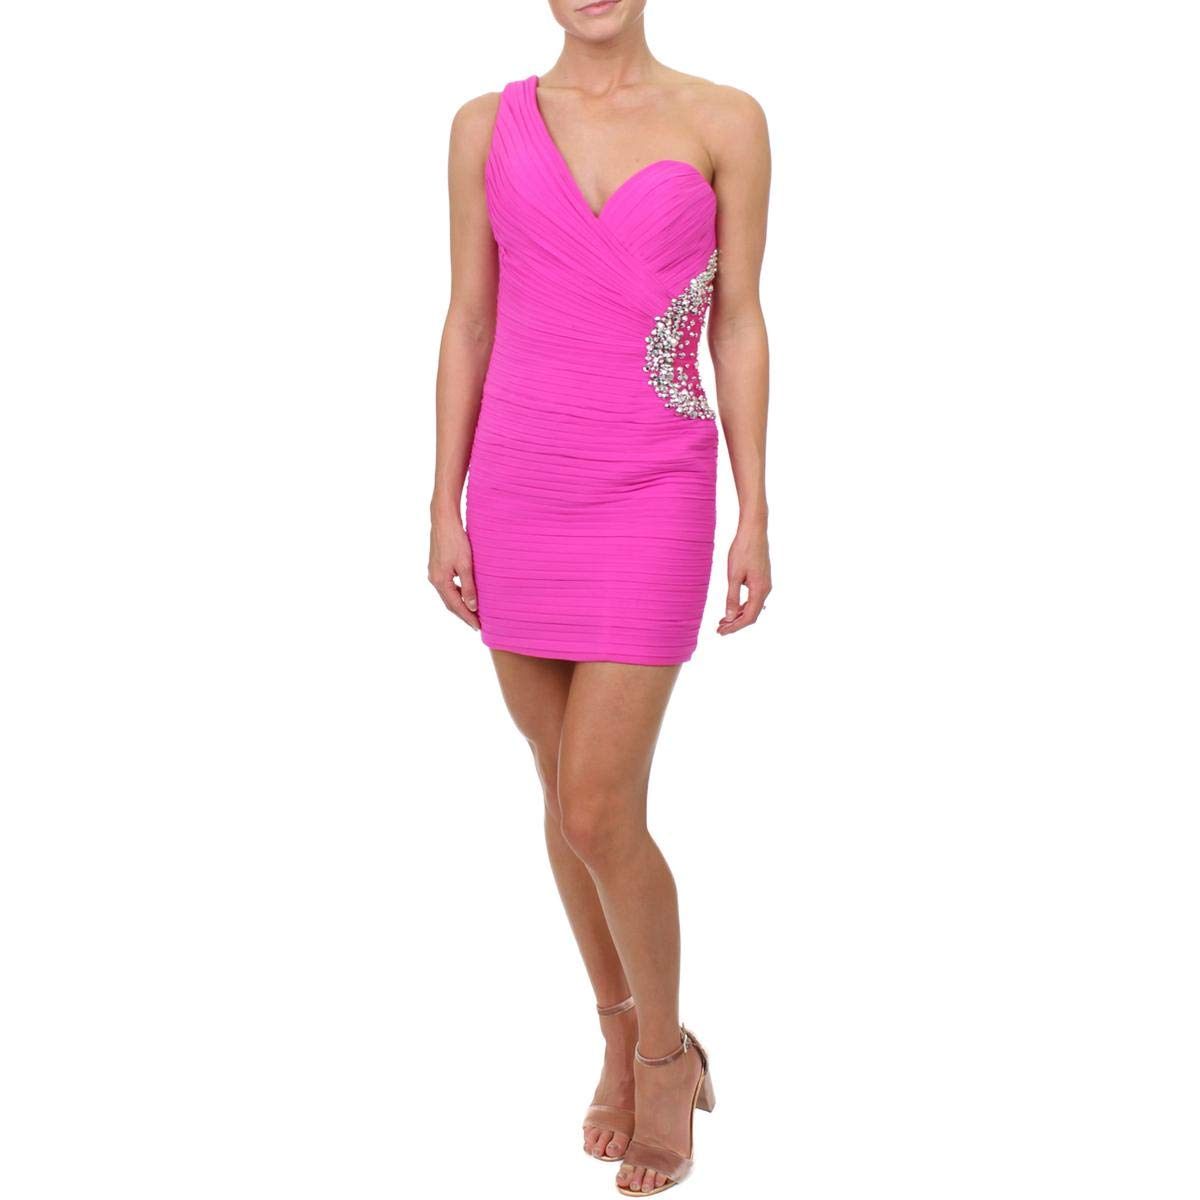 Available at Amazon: JVN by Jovani Women's Embellished One Shoulder Semi-Formal Dress